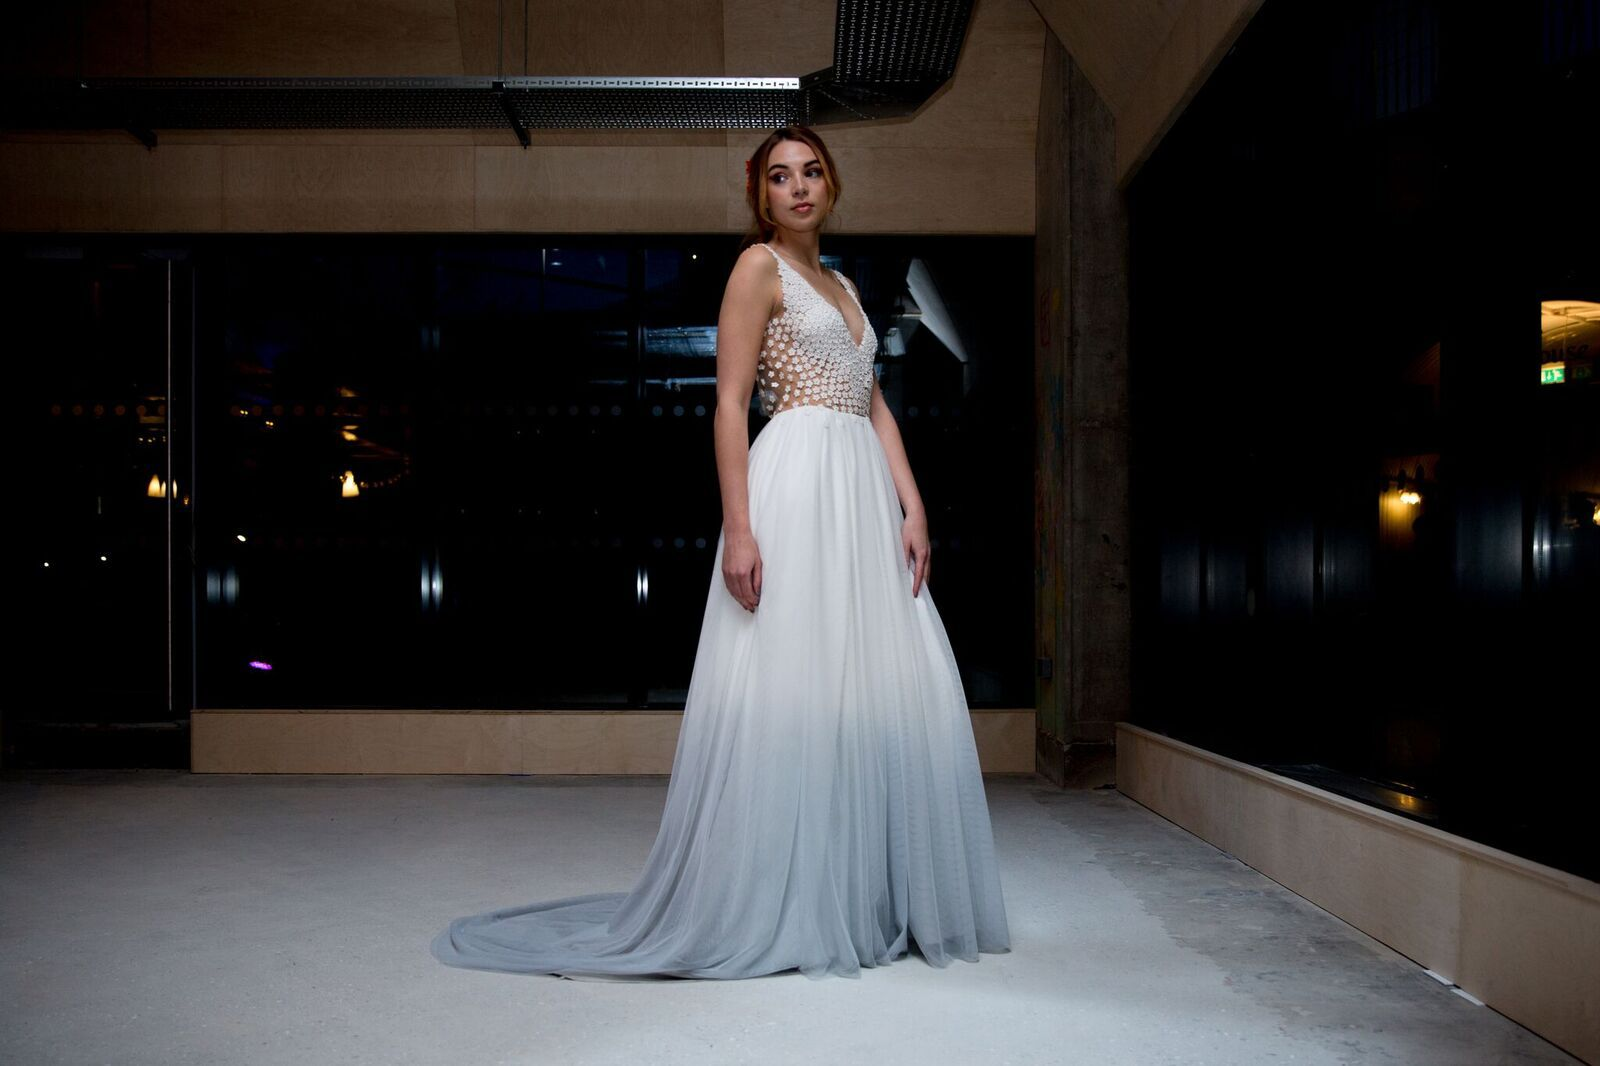 3e7ebc0ae4a646 Dip dye coloured wedding dress Heart of Glass by Lucy Can't Dance available  at RTF Berkshire |Boho Wedding Dresses | Bridal Boutique | Essex, London,  ...